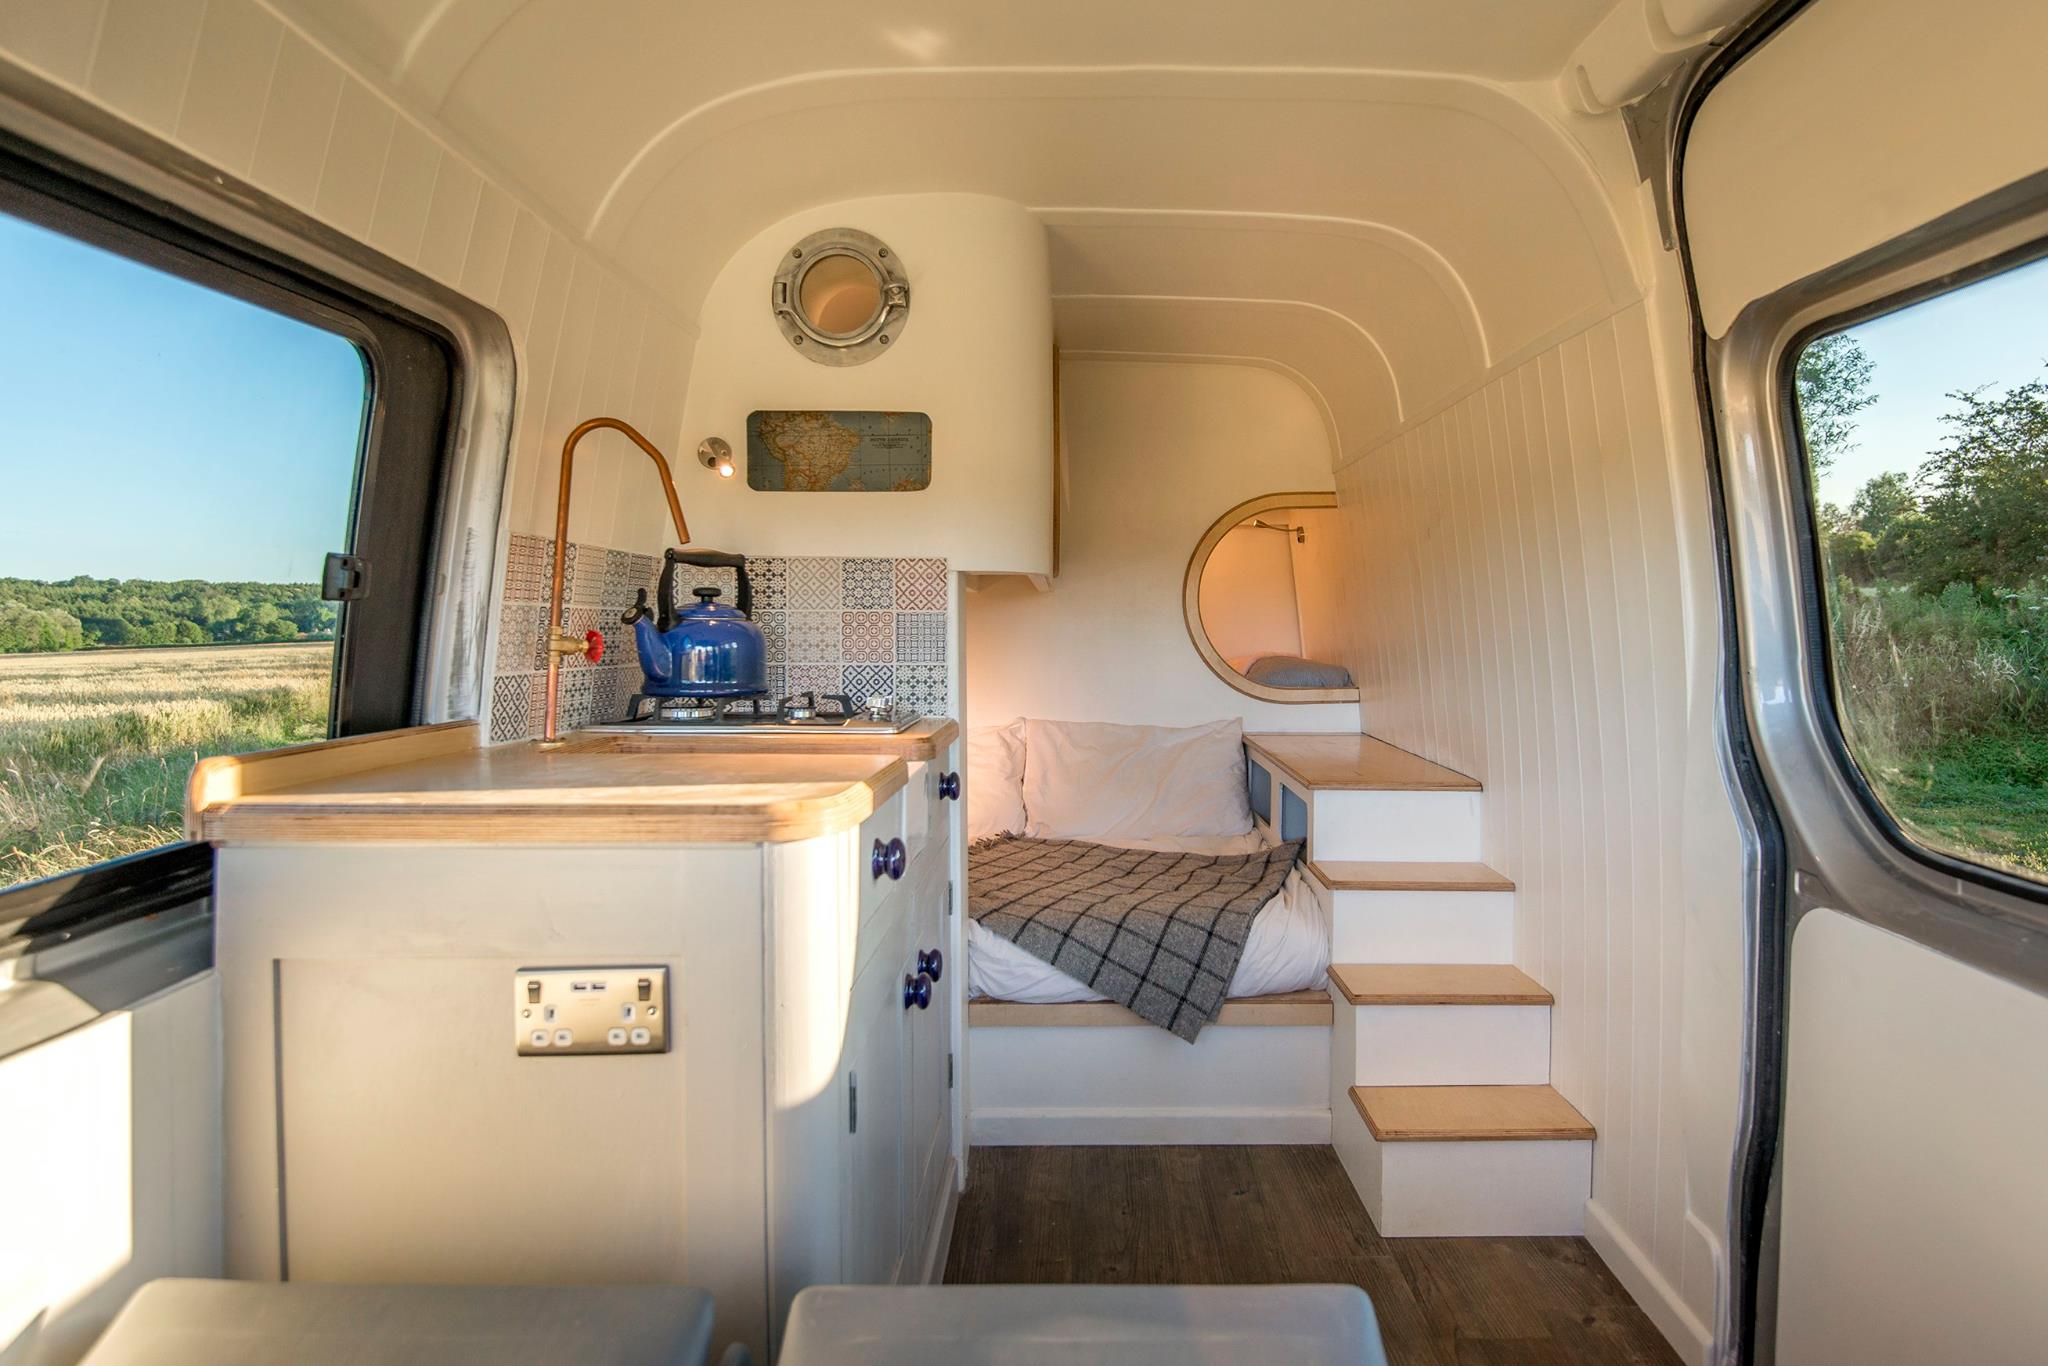 Home On Wheels 5 impressive tiny houses you can order right now - curbed